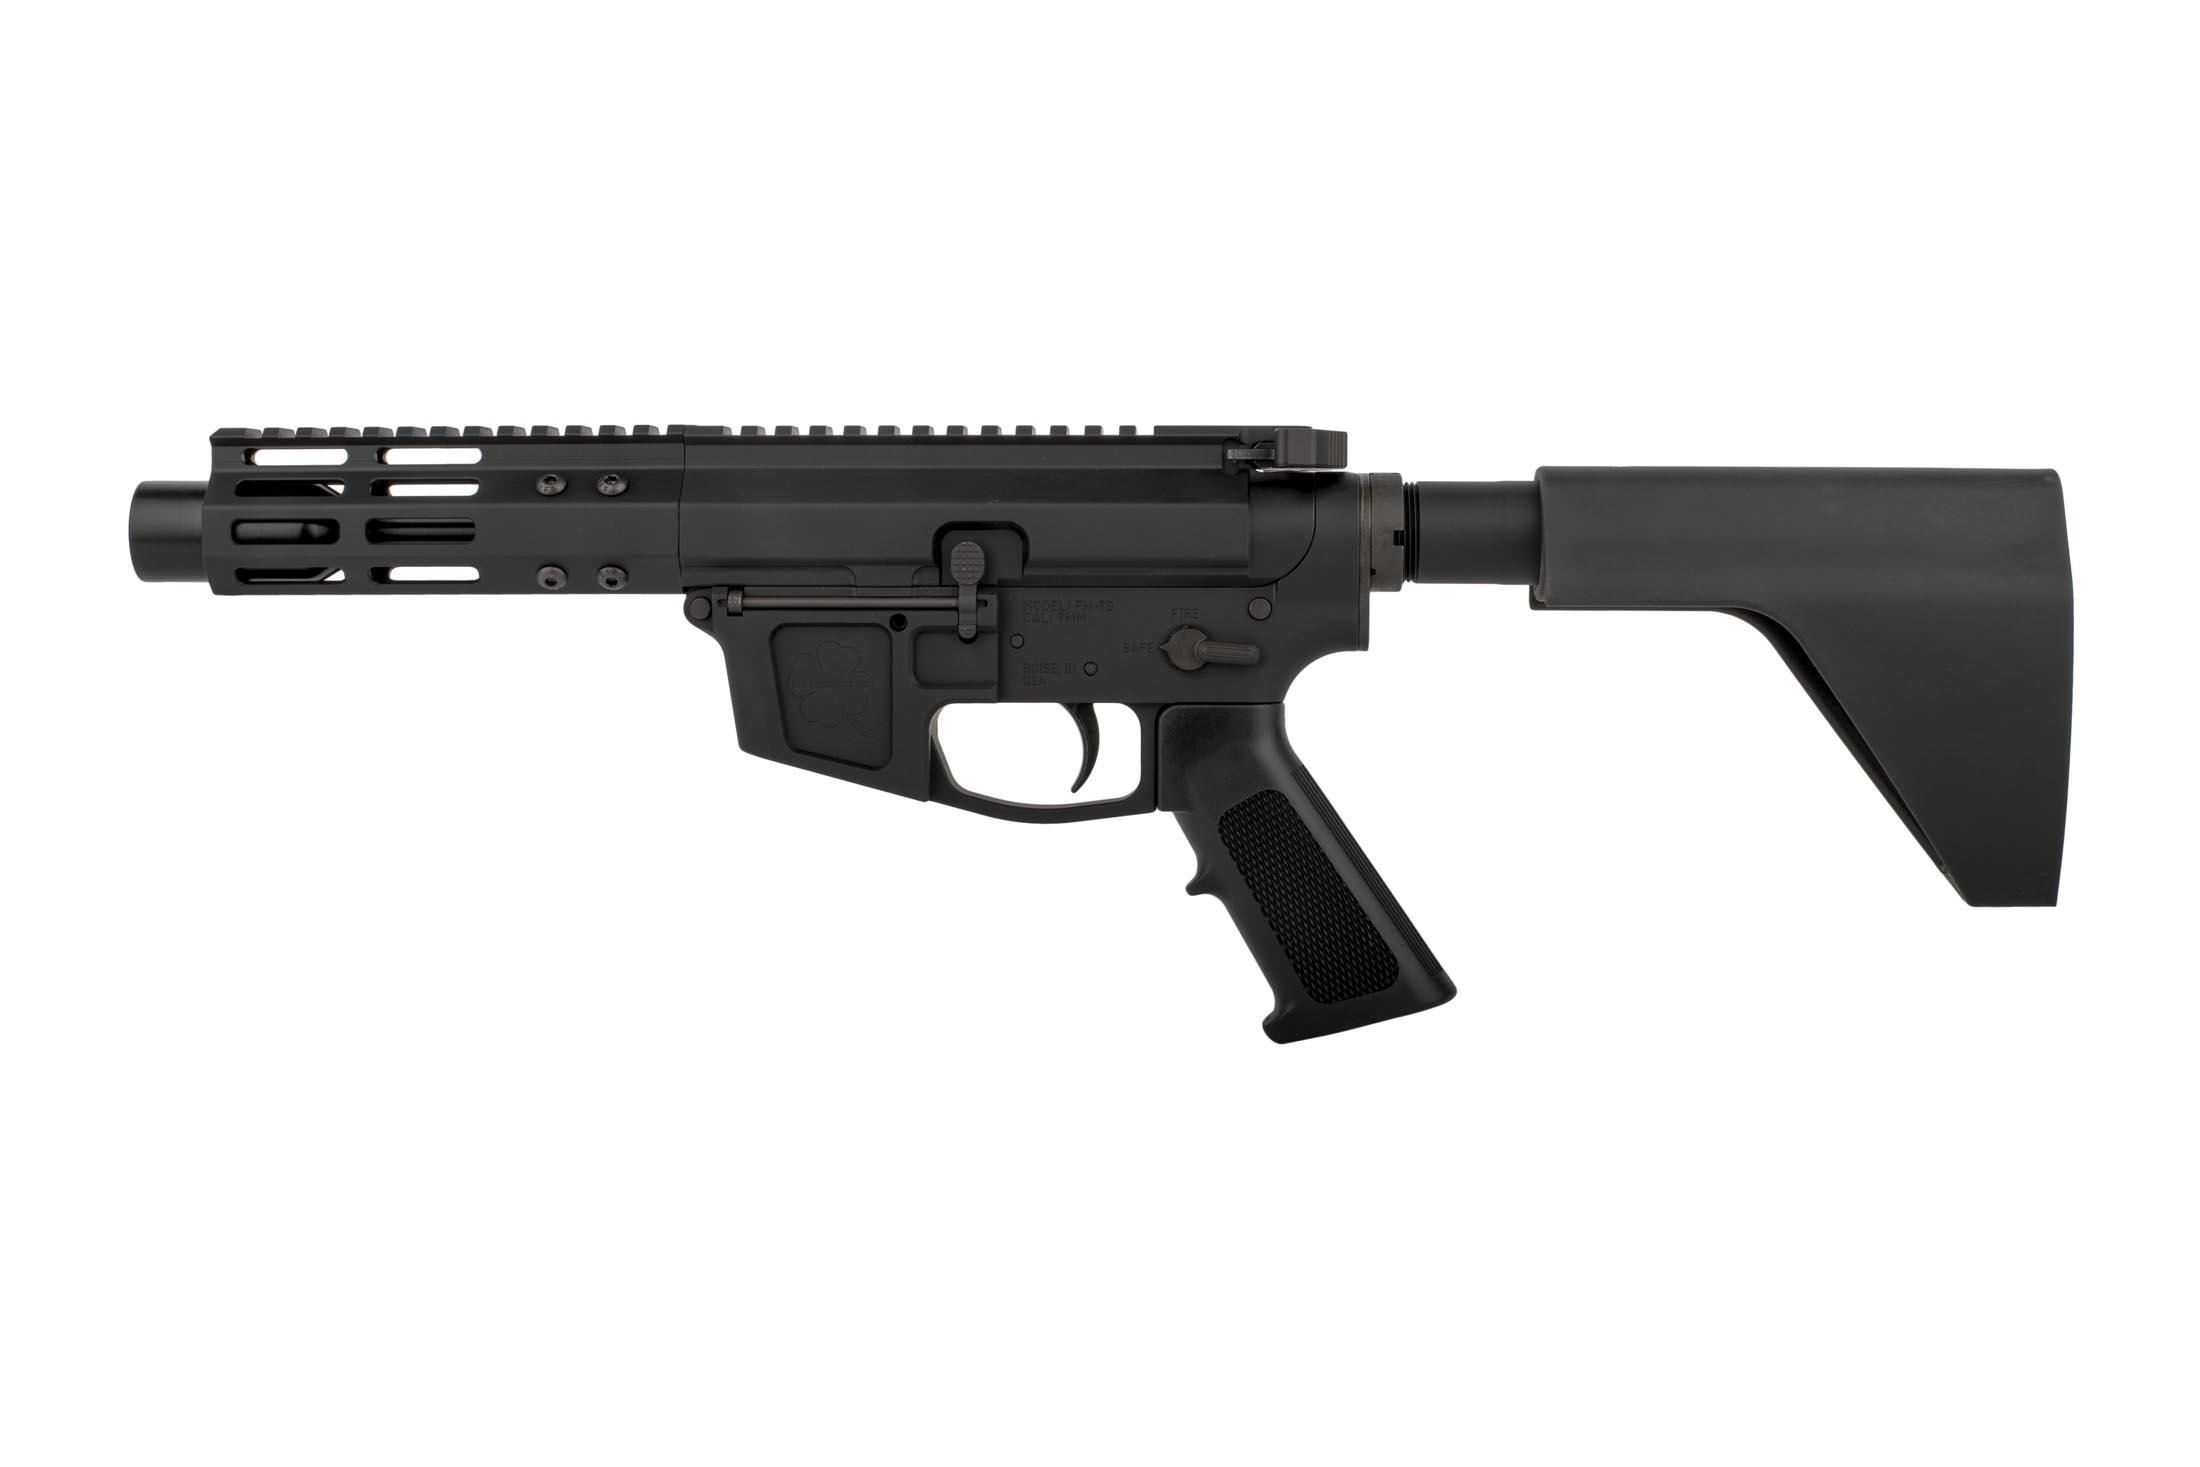 The Foxtrot Mike Products AR pistol uses a standard safety selector